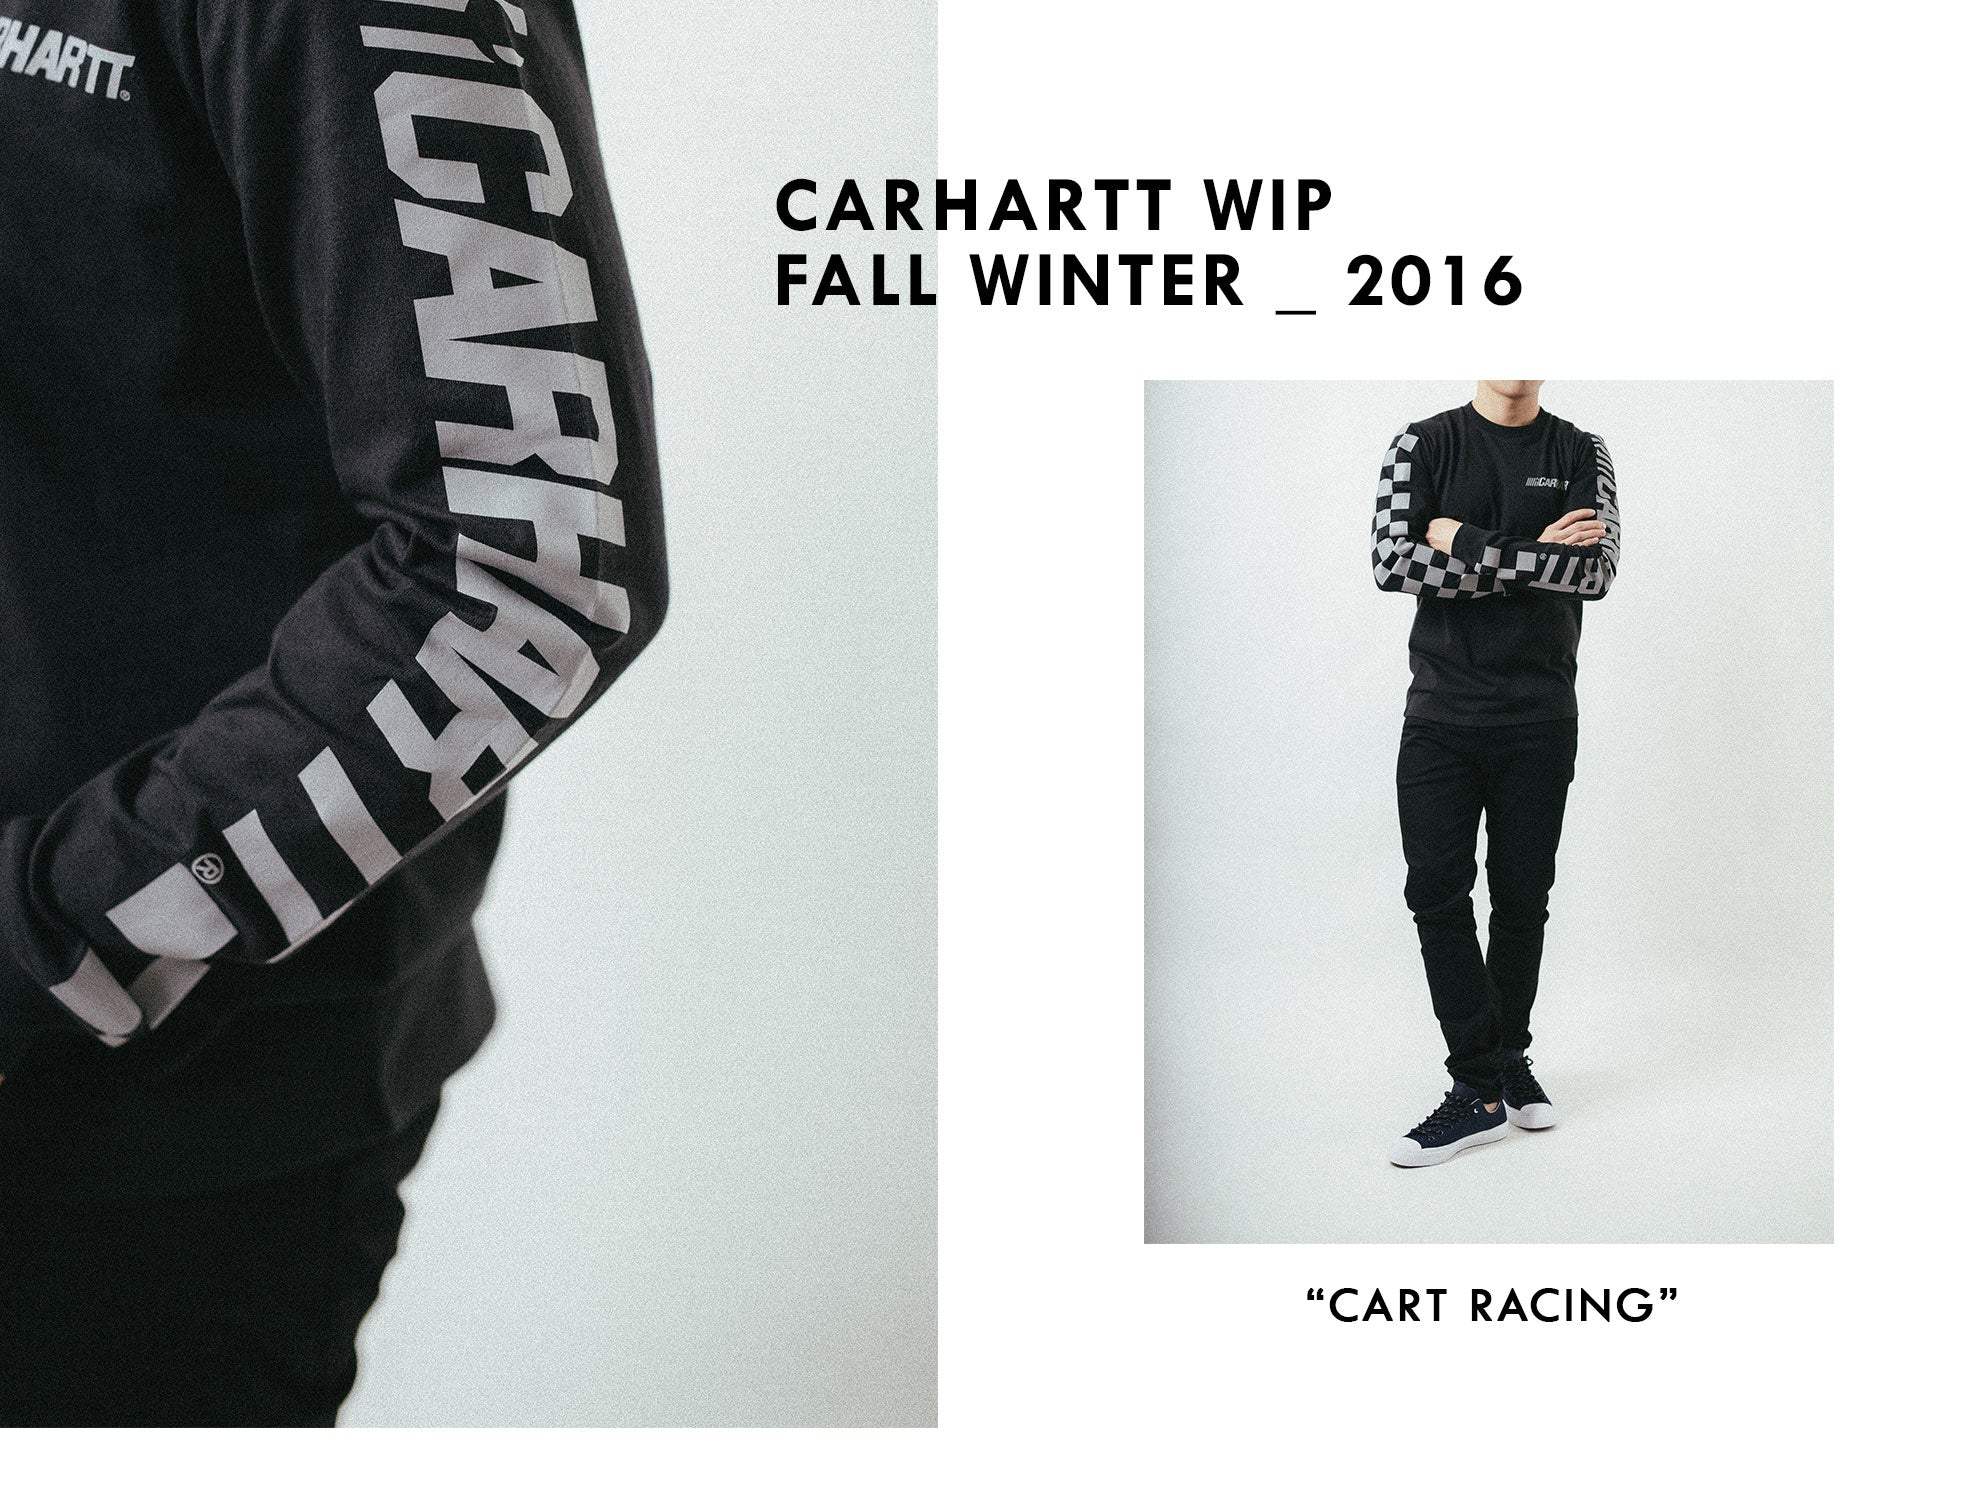 CARHARTT WIP FW16 - CART RACING